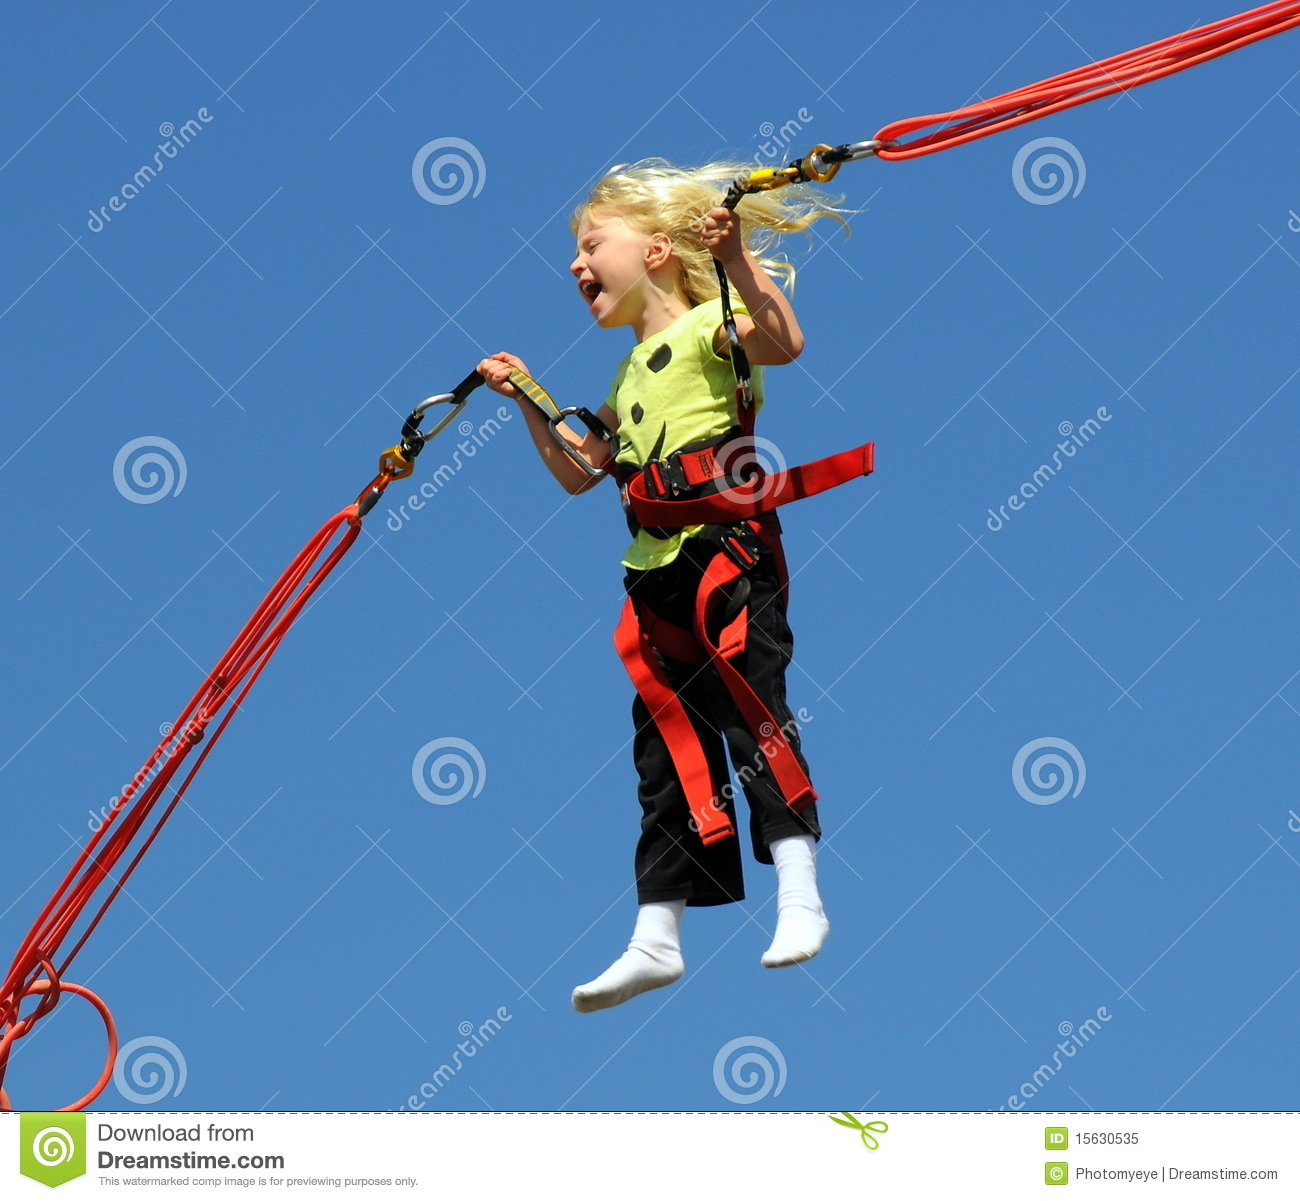 Bungee jumping as a business: A business plan